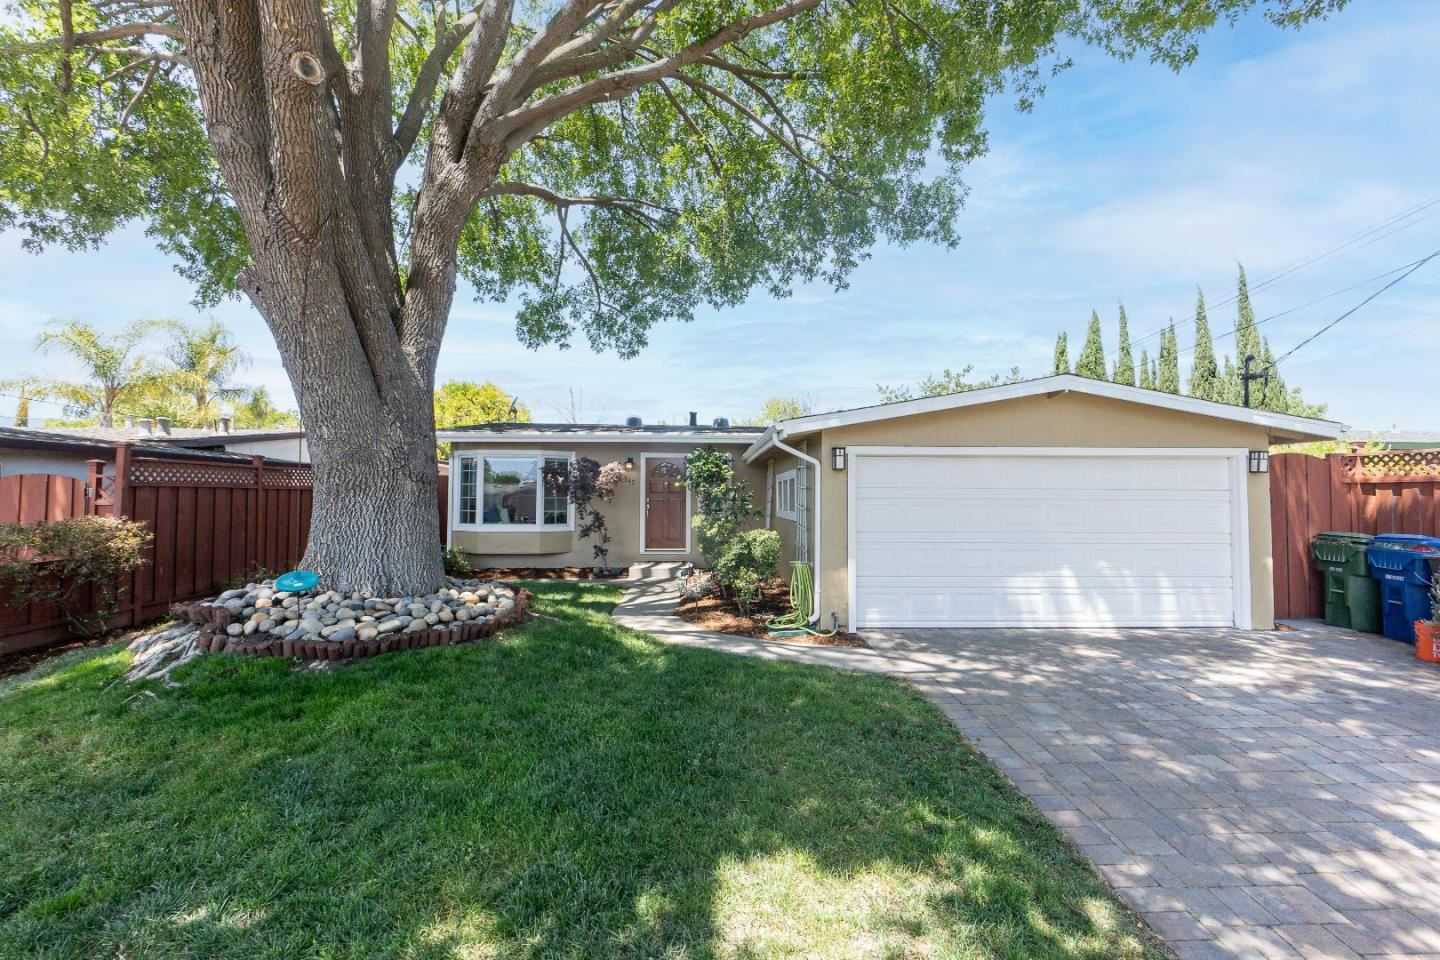 Photo for 547 Weston Drive, CAMPBELL, CA 95008 (MLS # ML81847722)